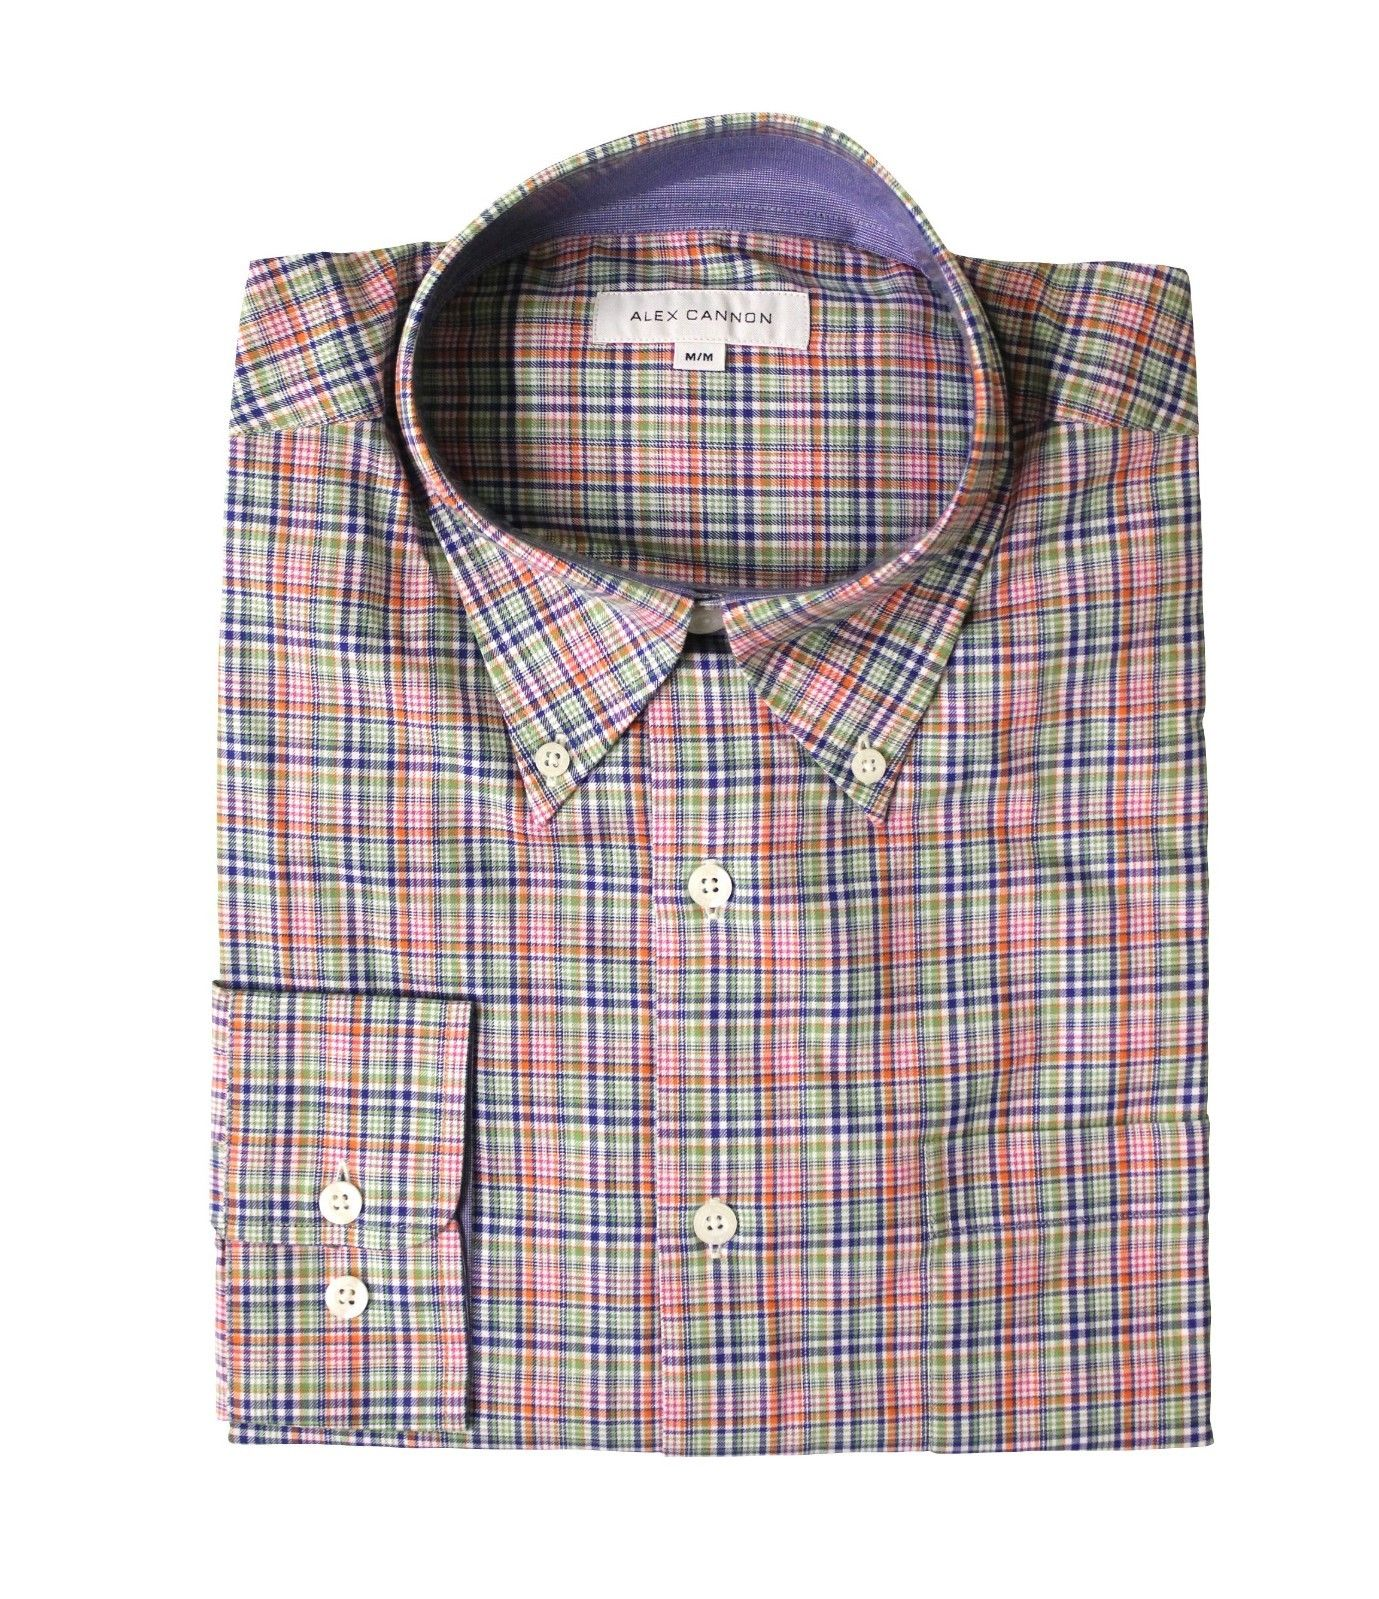 Alex Cannon Men's Dress Shirt, Color Pop, Size M, NWT